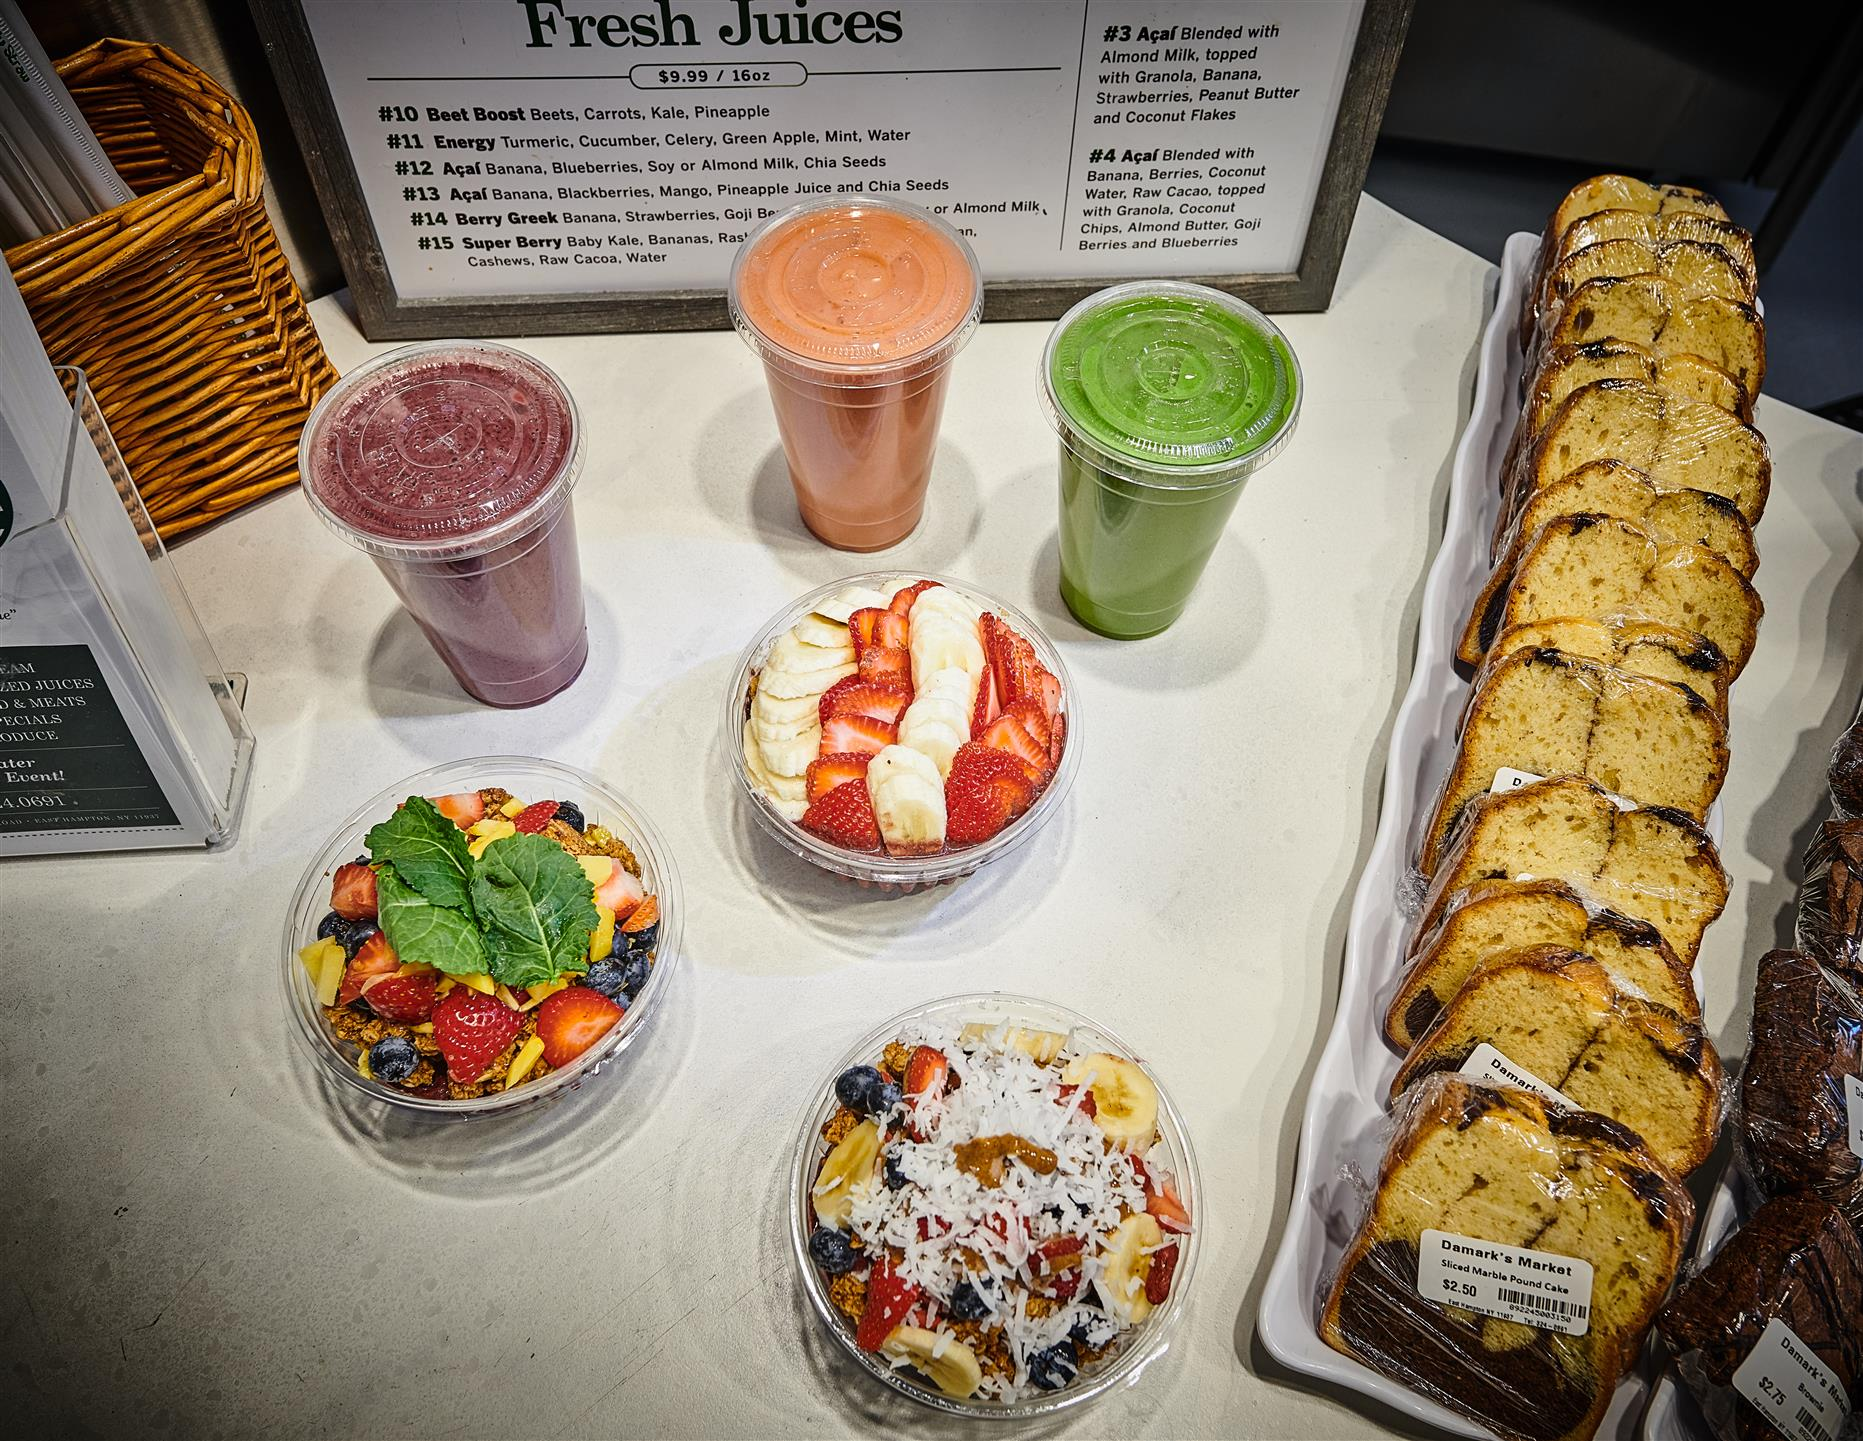 assortment of acai bowls and smoothies with an assortment of marble cake